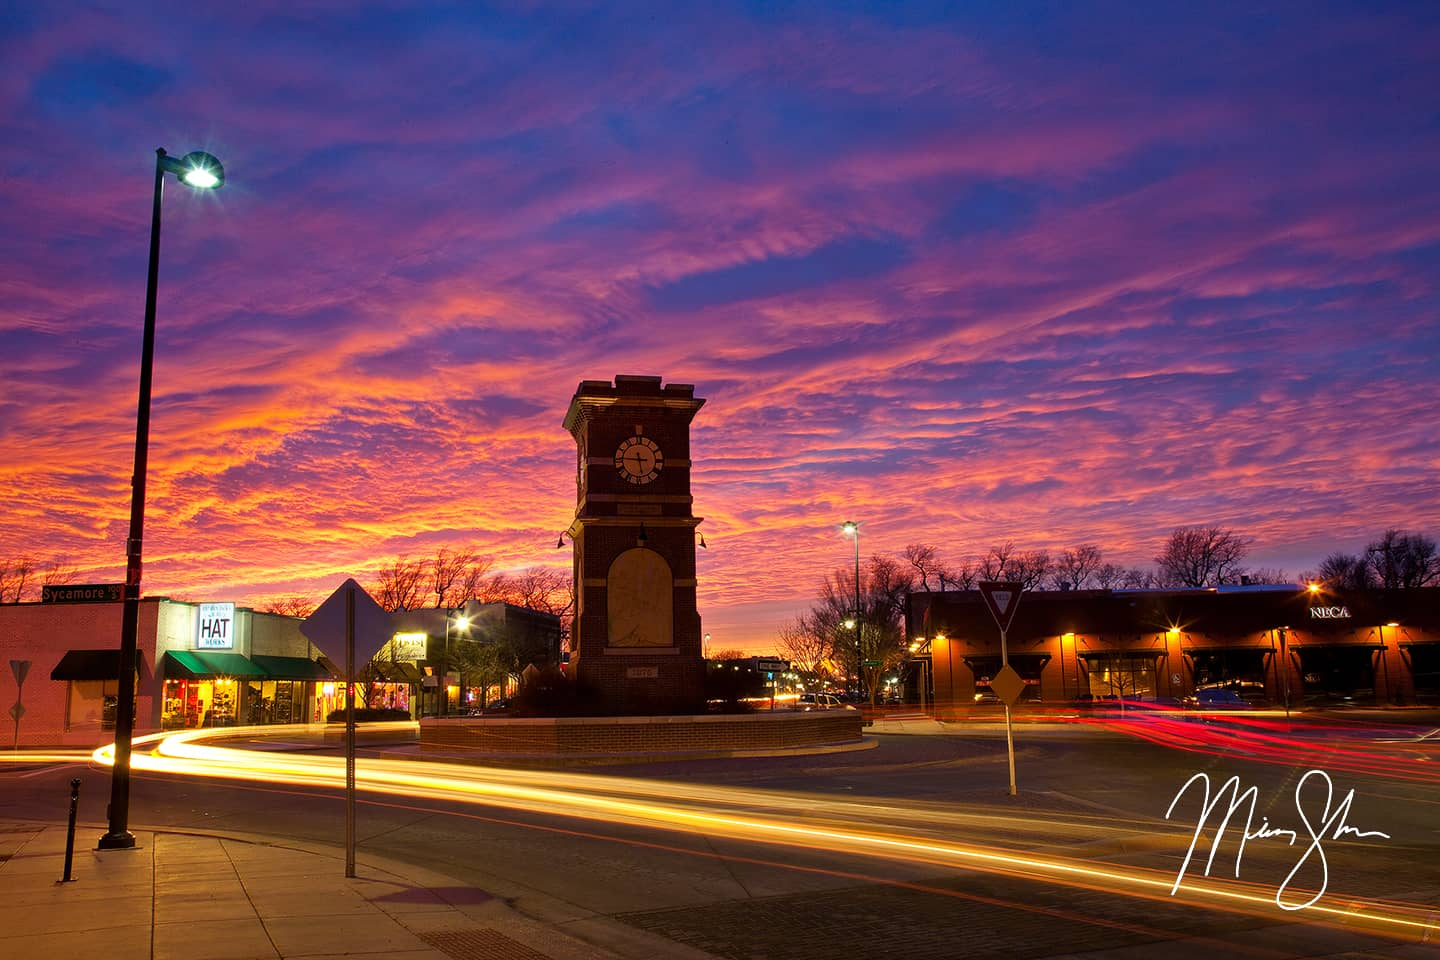 Calendar Art Ks : Delano district sunset wichita kansas